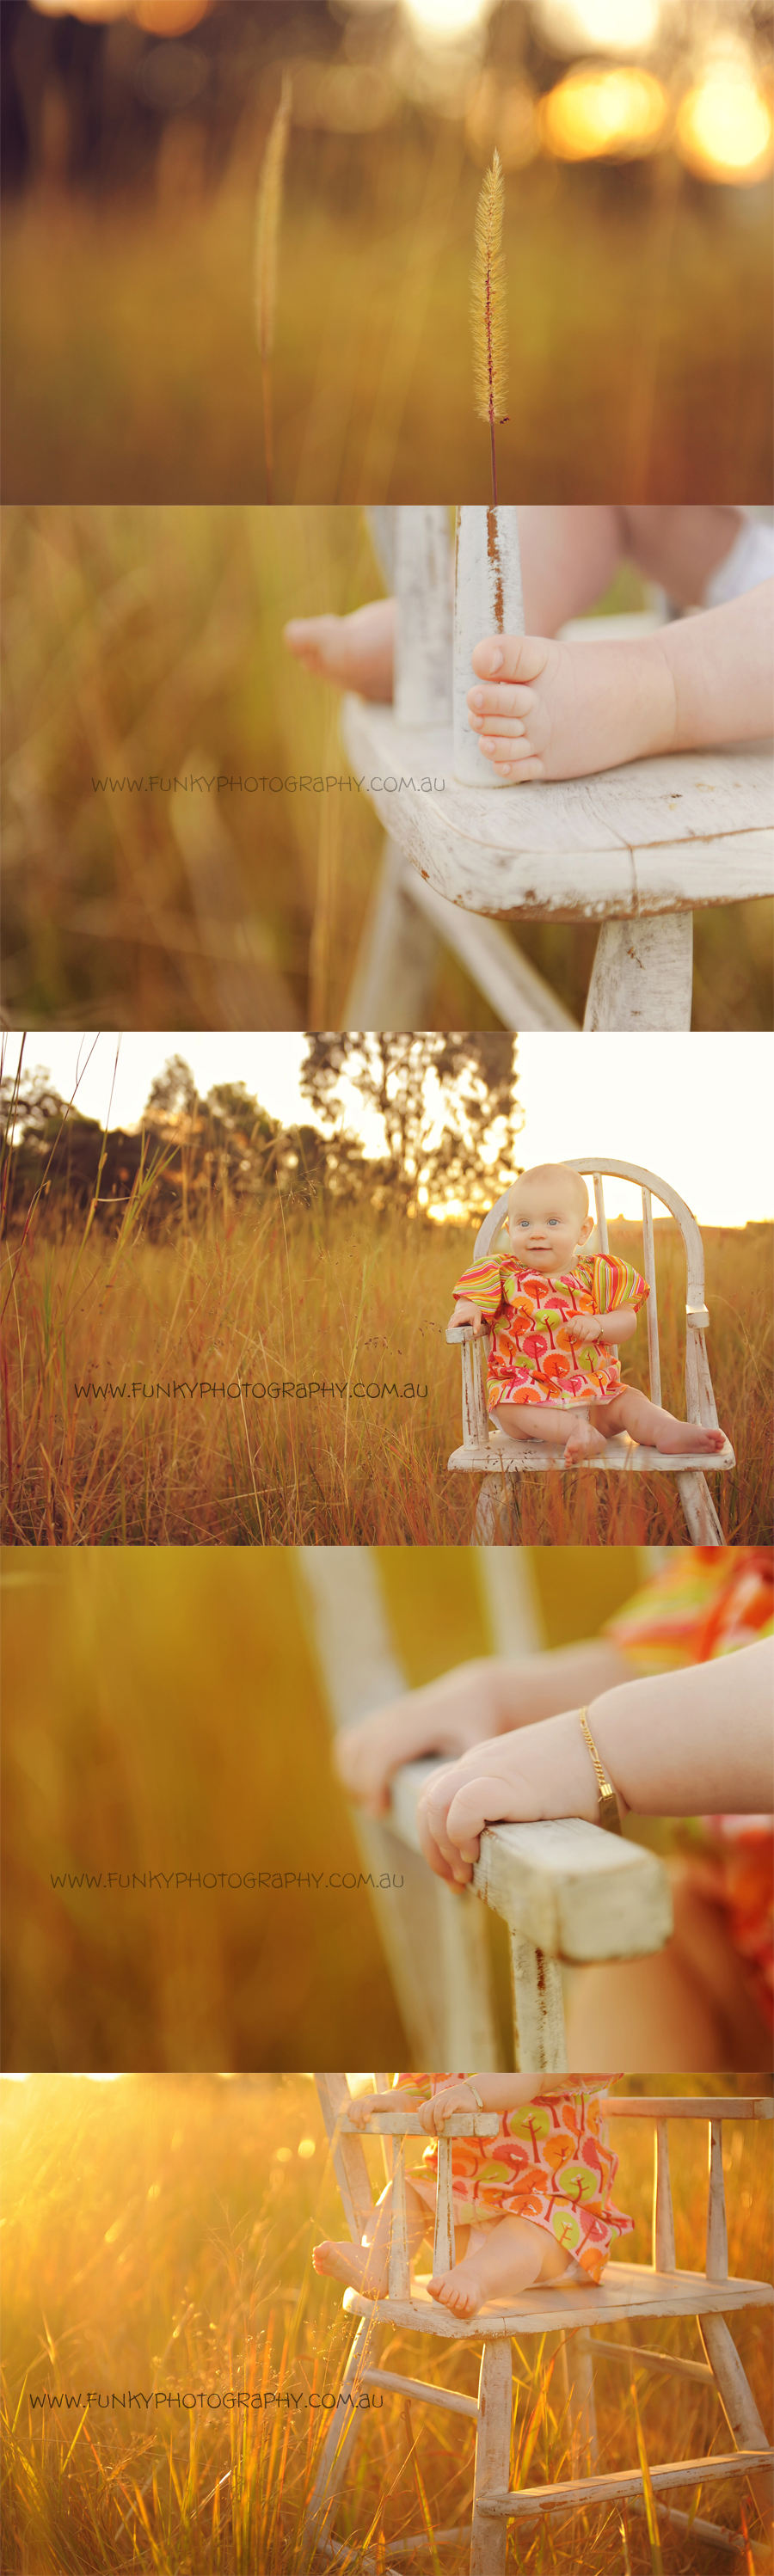 baby in a field with sunflare and sunset